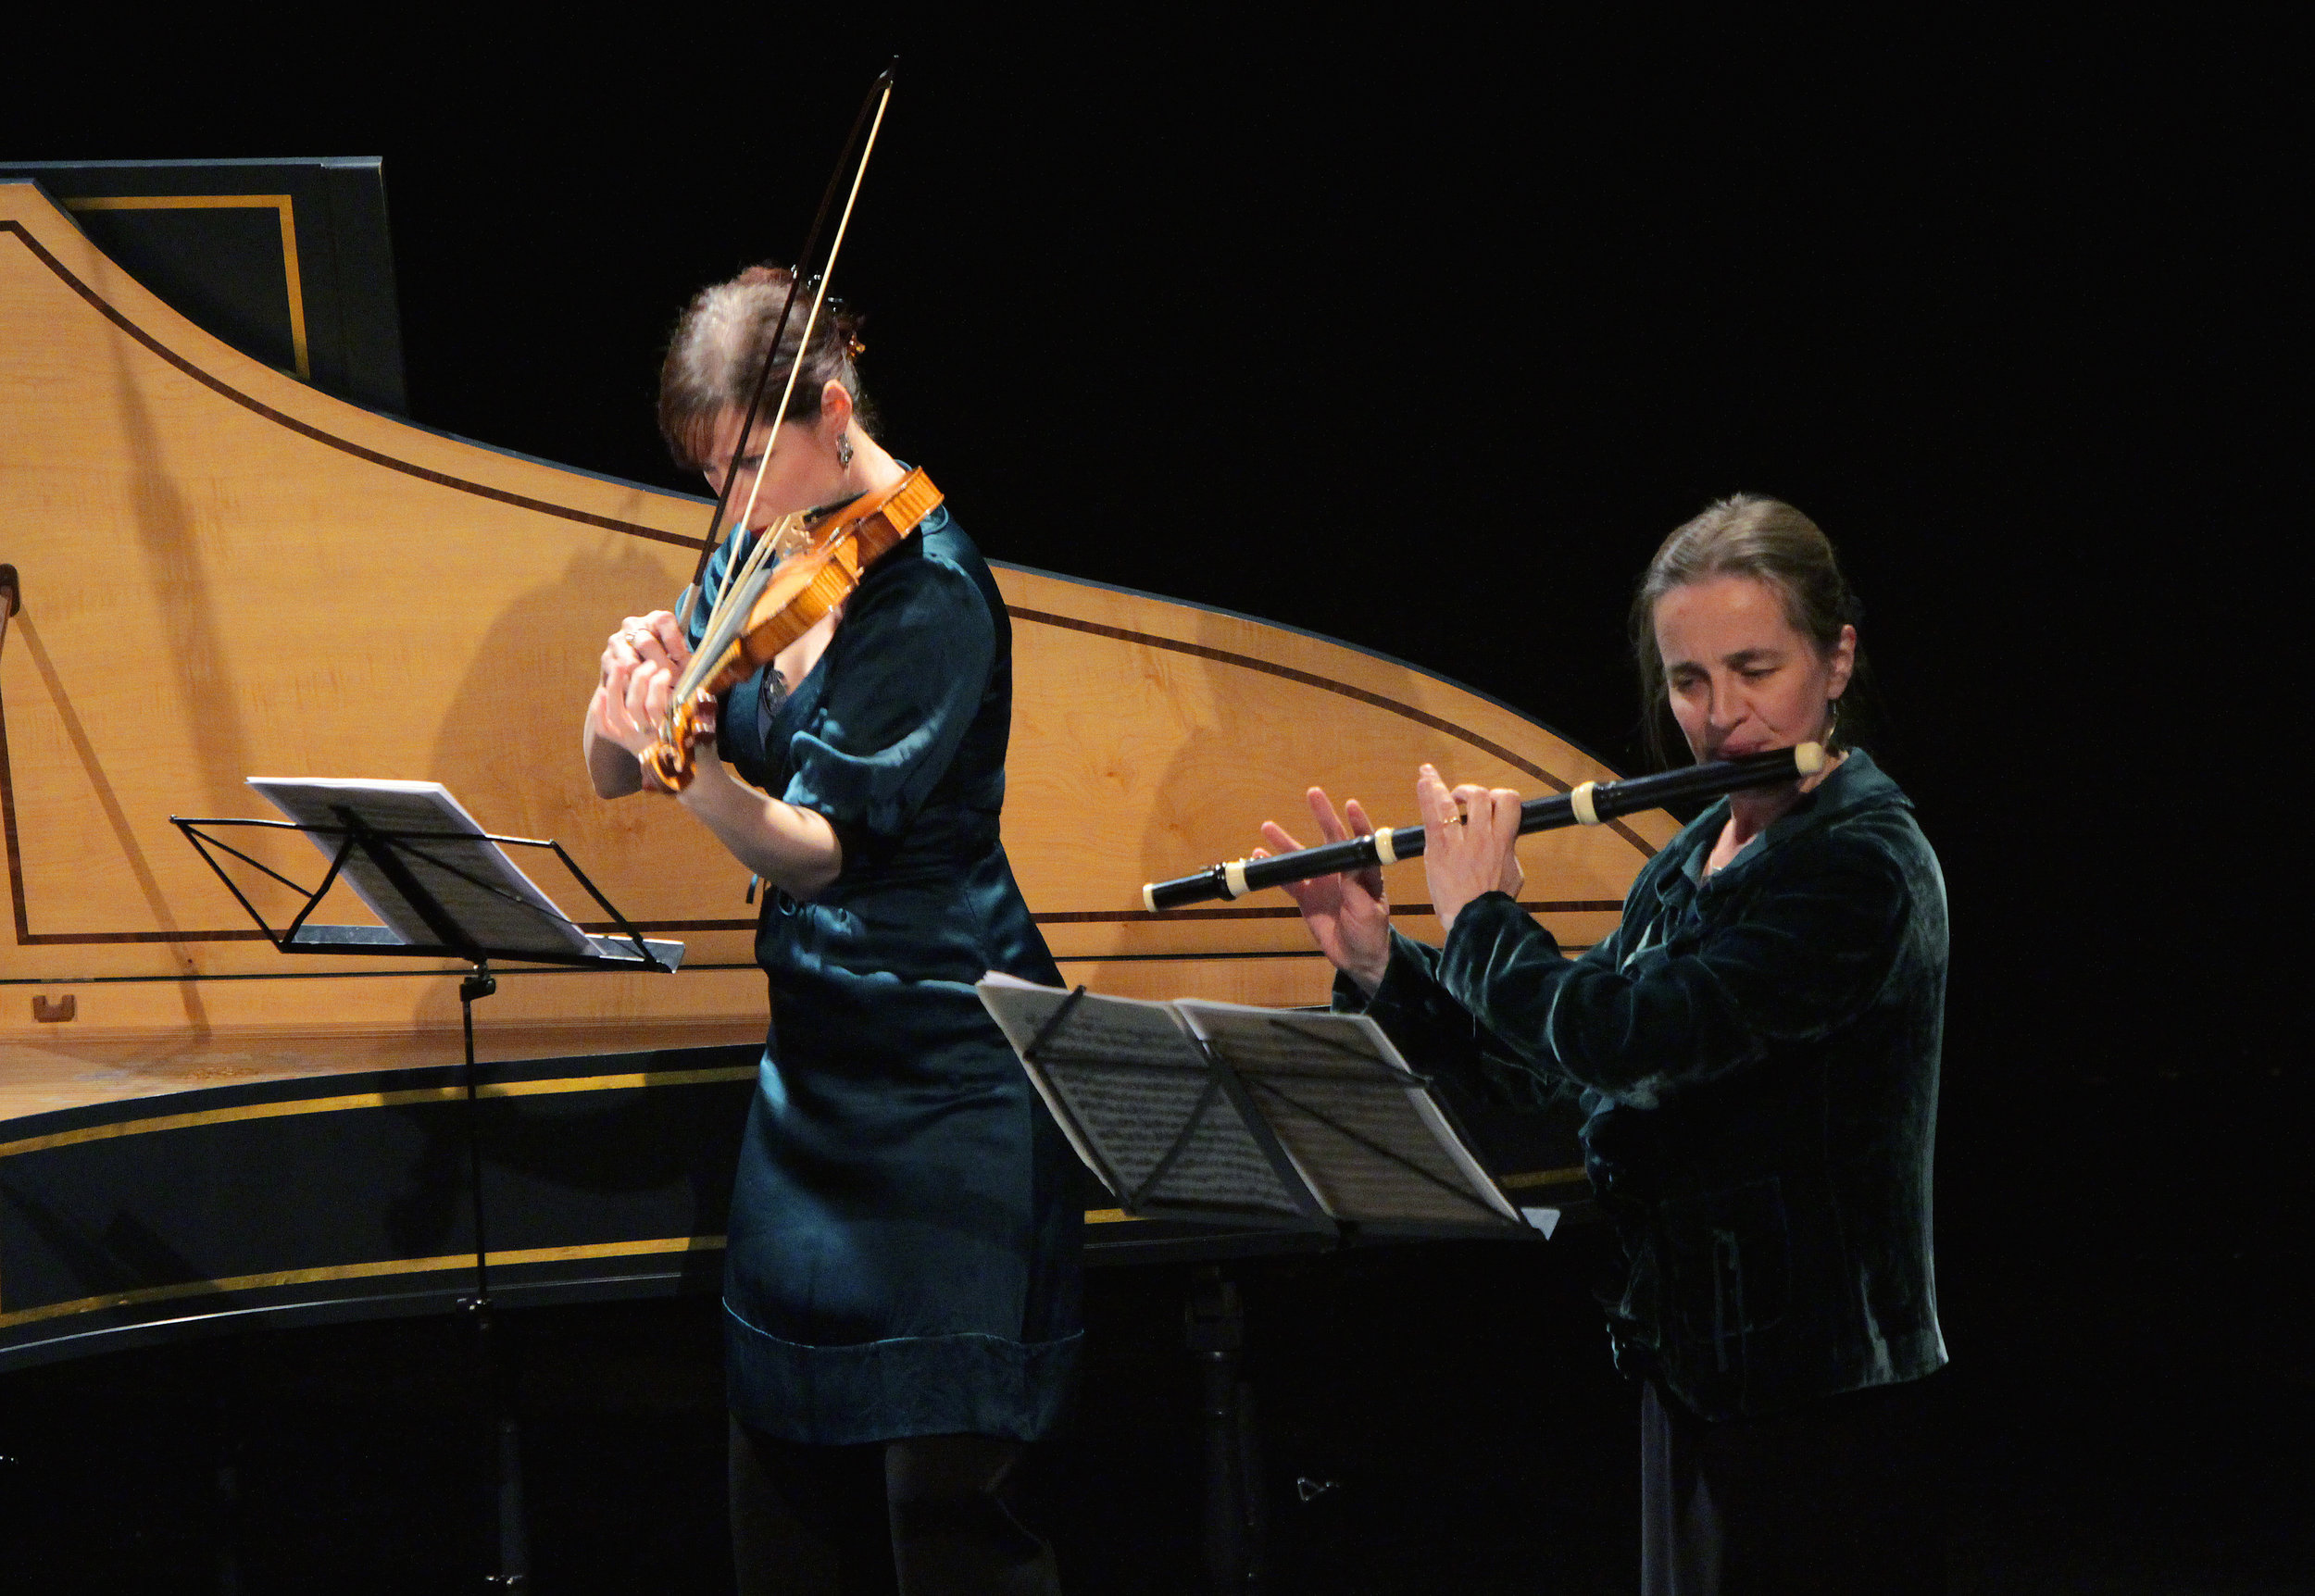 BERLIN: THE AGE OF ENLIGHTENMENT - january 24, 2015. londonRachel Brown, fluteMadeleine Easton, violinRichard Boothby, viola da gambaMahan Esfahani, harpsichordIllustrated talk by Norman LebrechtC.P.E. Bach -Sonata in D major for viola da gamba and harpsichord, Wq. 88Benda -Sonata XI in D major for violin and basso continuoQuantz -Trio Sonata in A minor, QV 2:Anh. 34Frederick II ('the Great') of Prussia -Sonata in C major for flute and basso continuo, SpiF 40J.S. Bach -Trio Sonata in C minor from The Musical Offering, BWV 1079